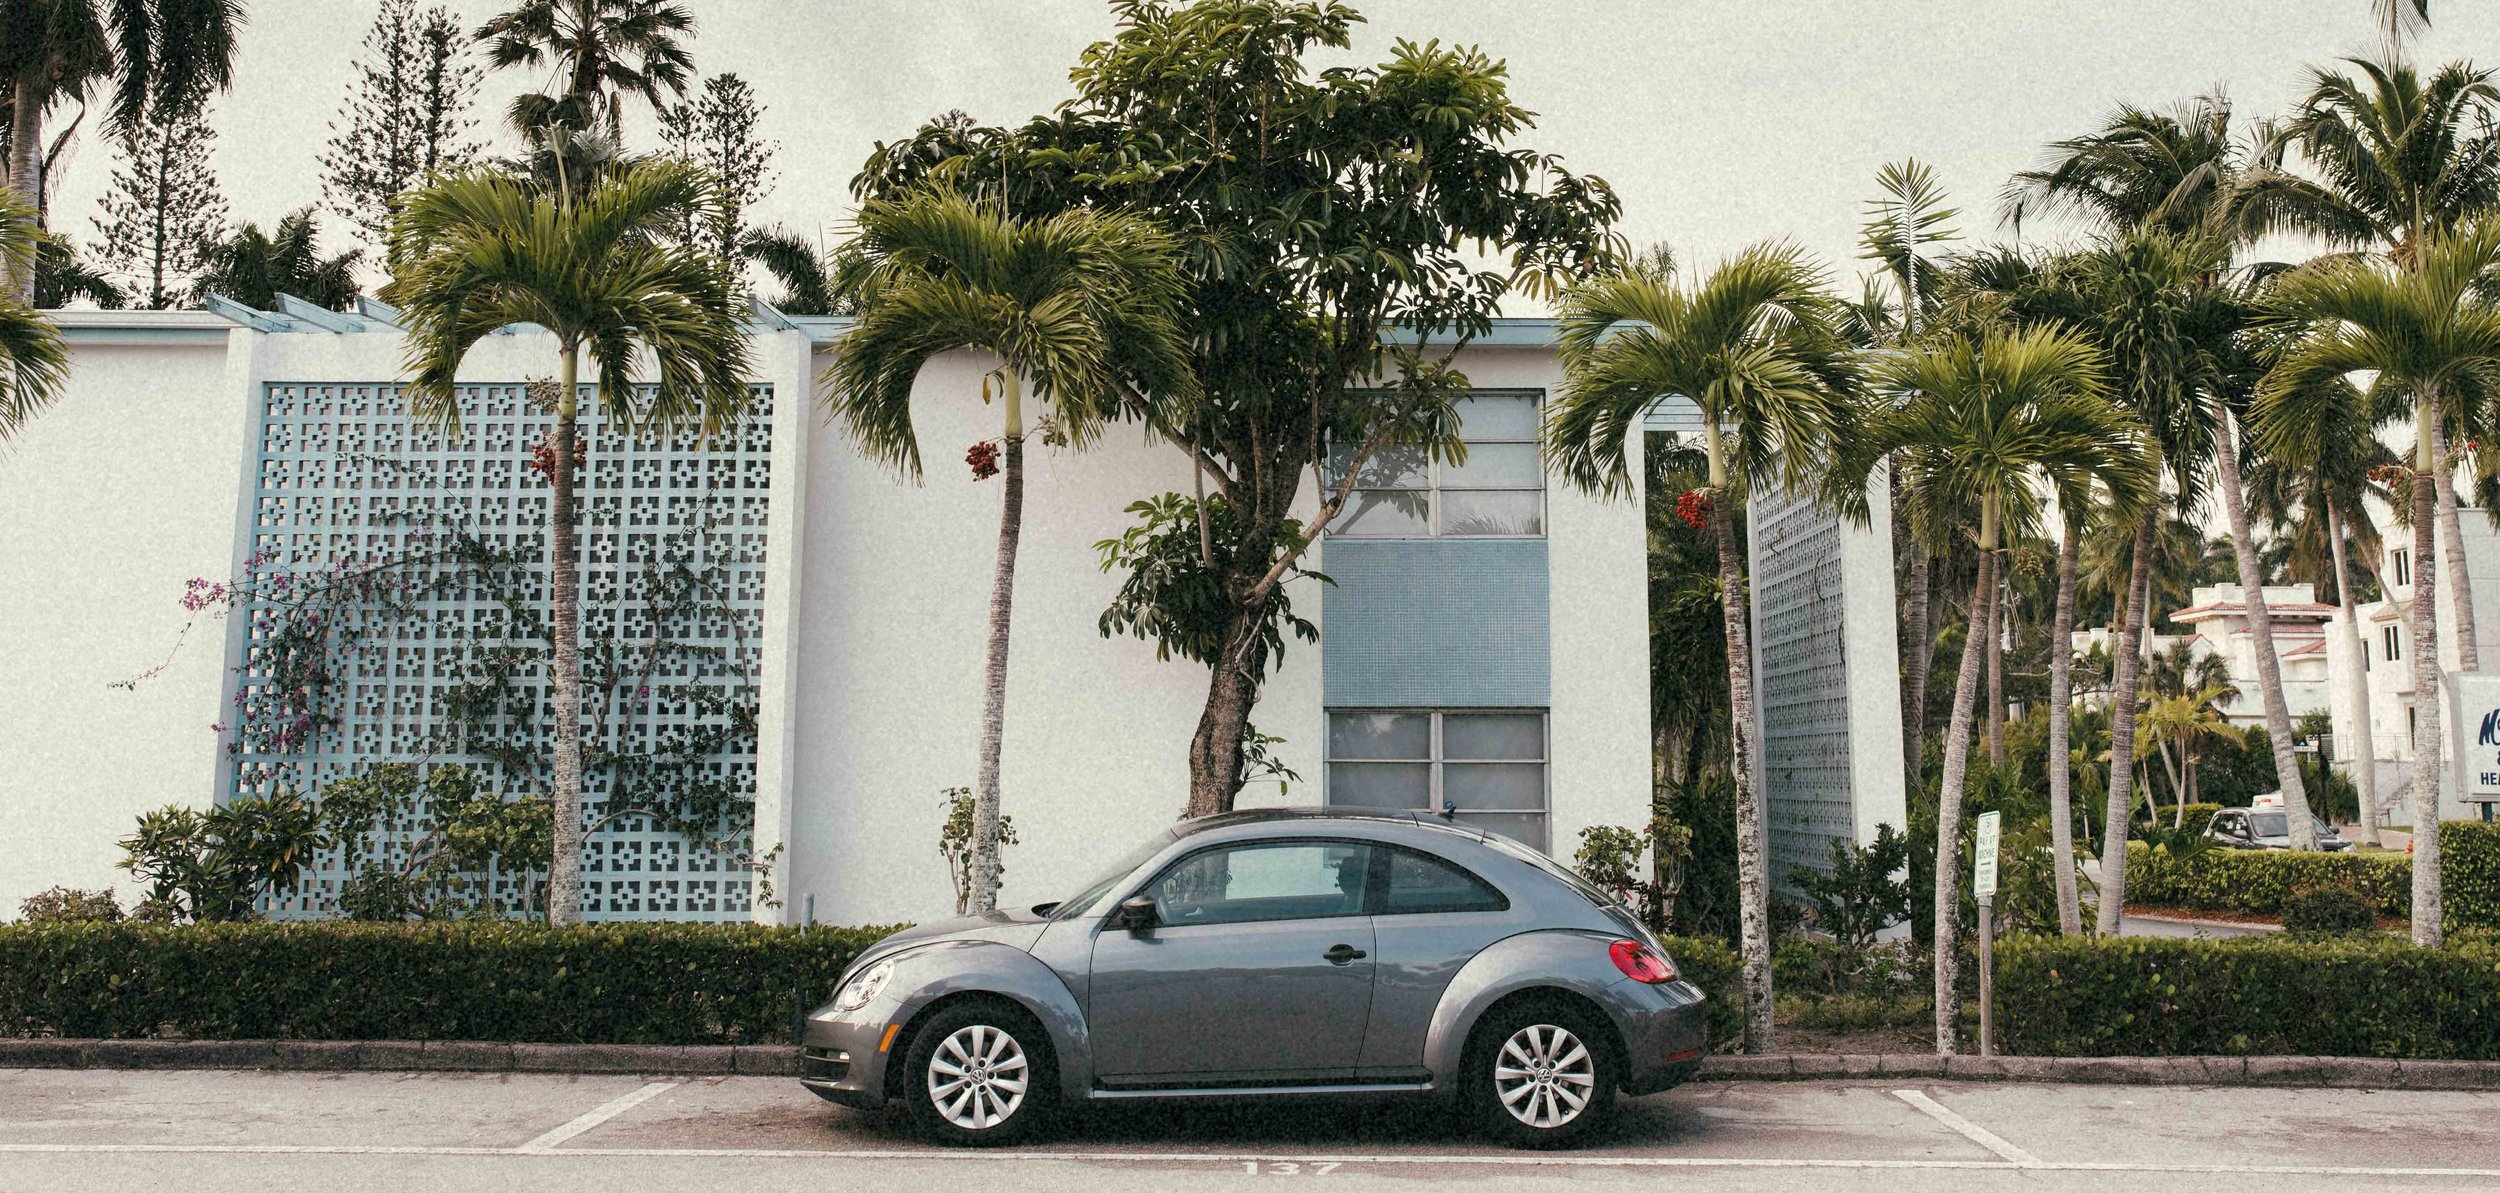 This is the last known photograph I snapped of my Beetle, this was 3 days before my accident